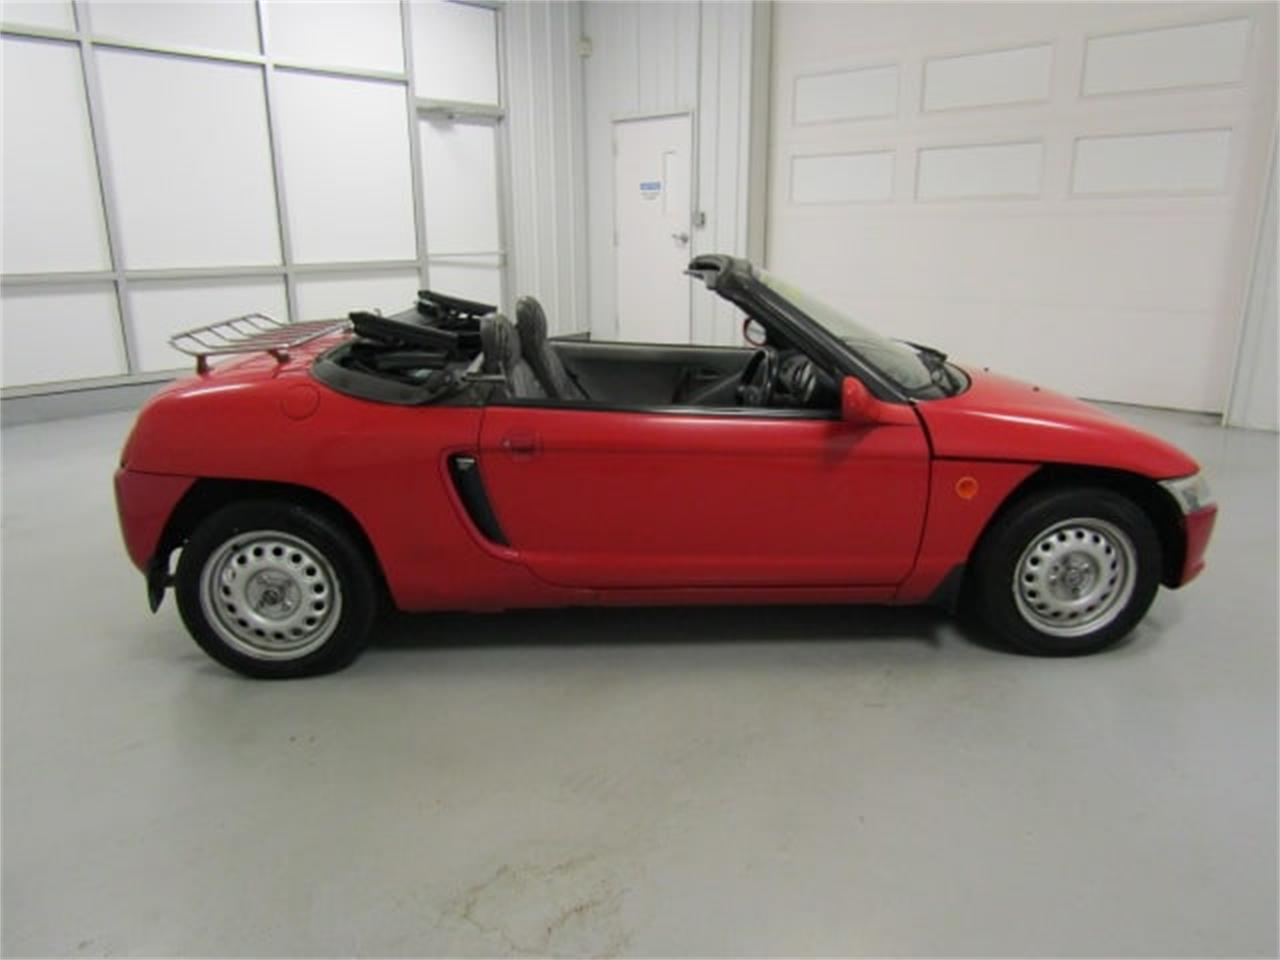 Large Picture of 1991 Honda Beat located in Christiansburg Virginia - $5,990.00 Offered by Duncan Imports & Classic Cars - JL71